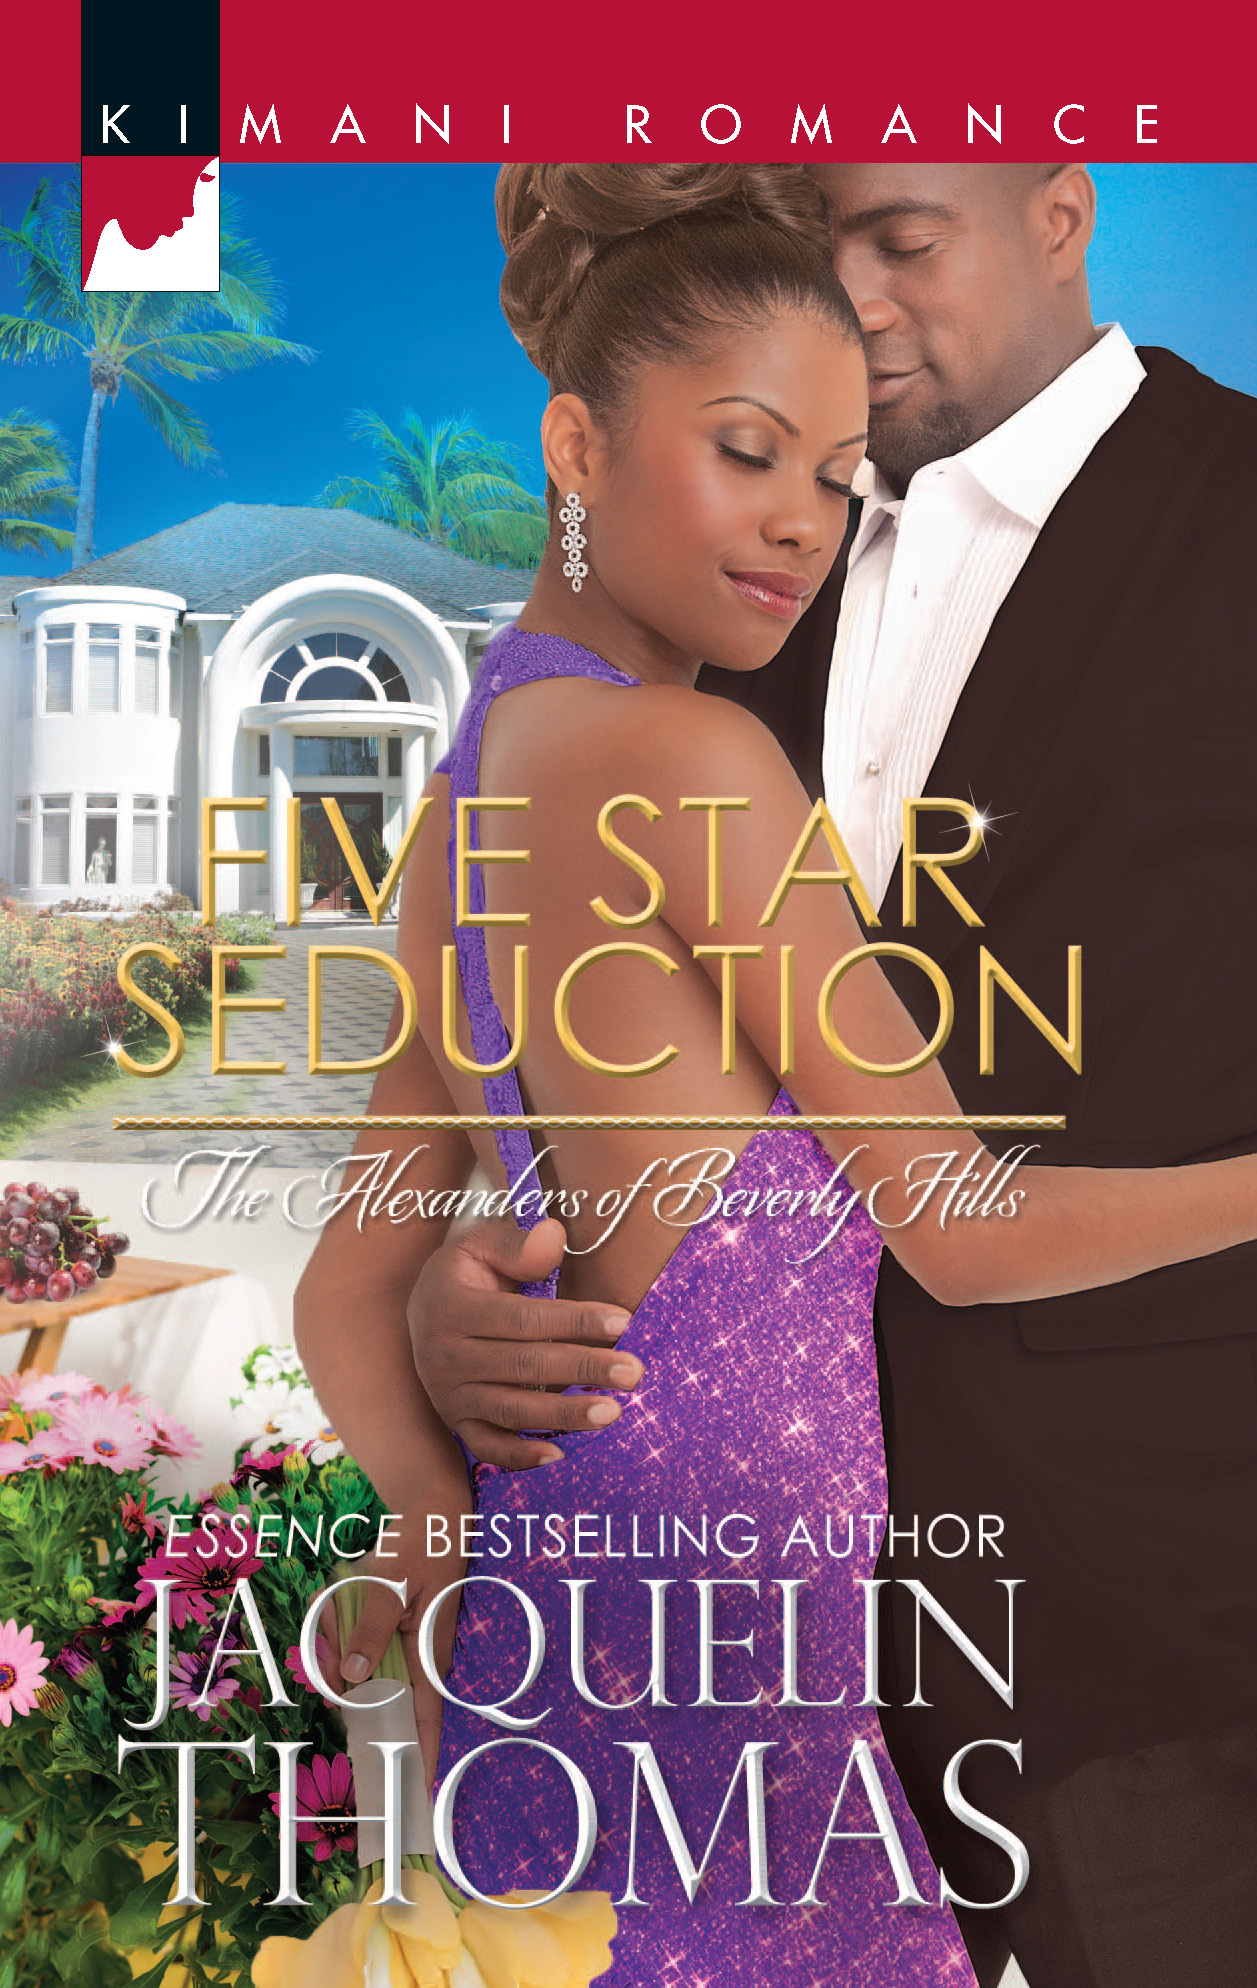 Five Star Seduction